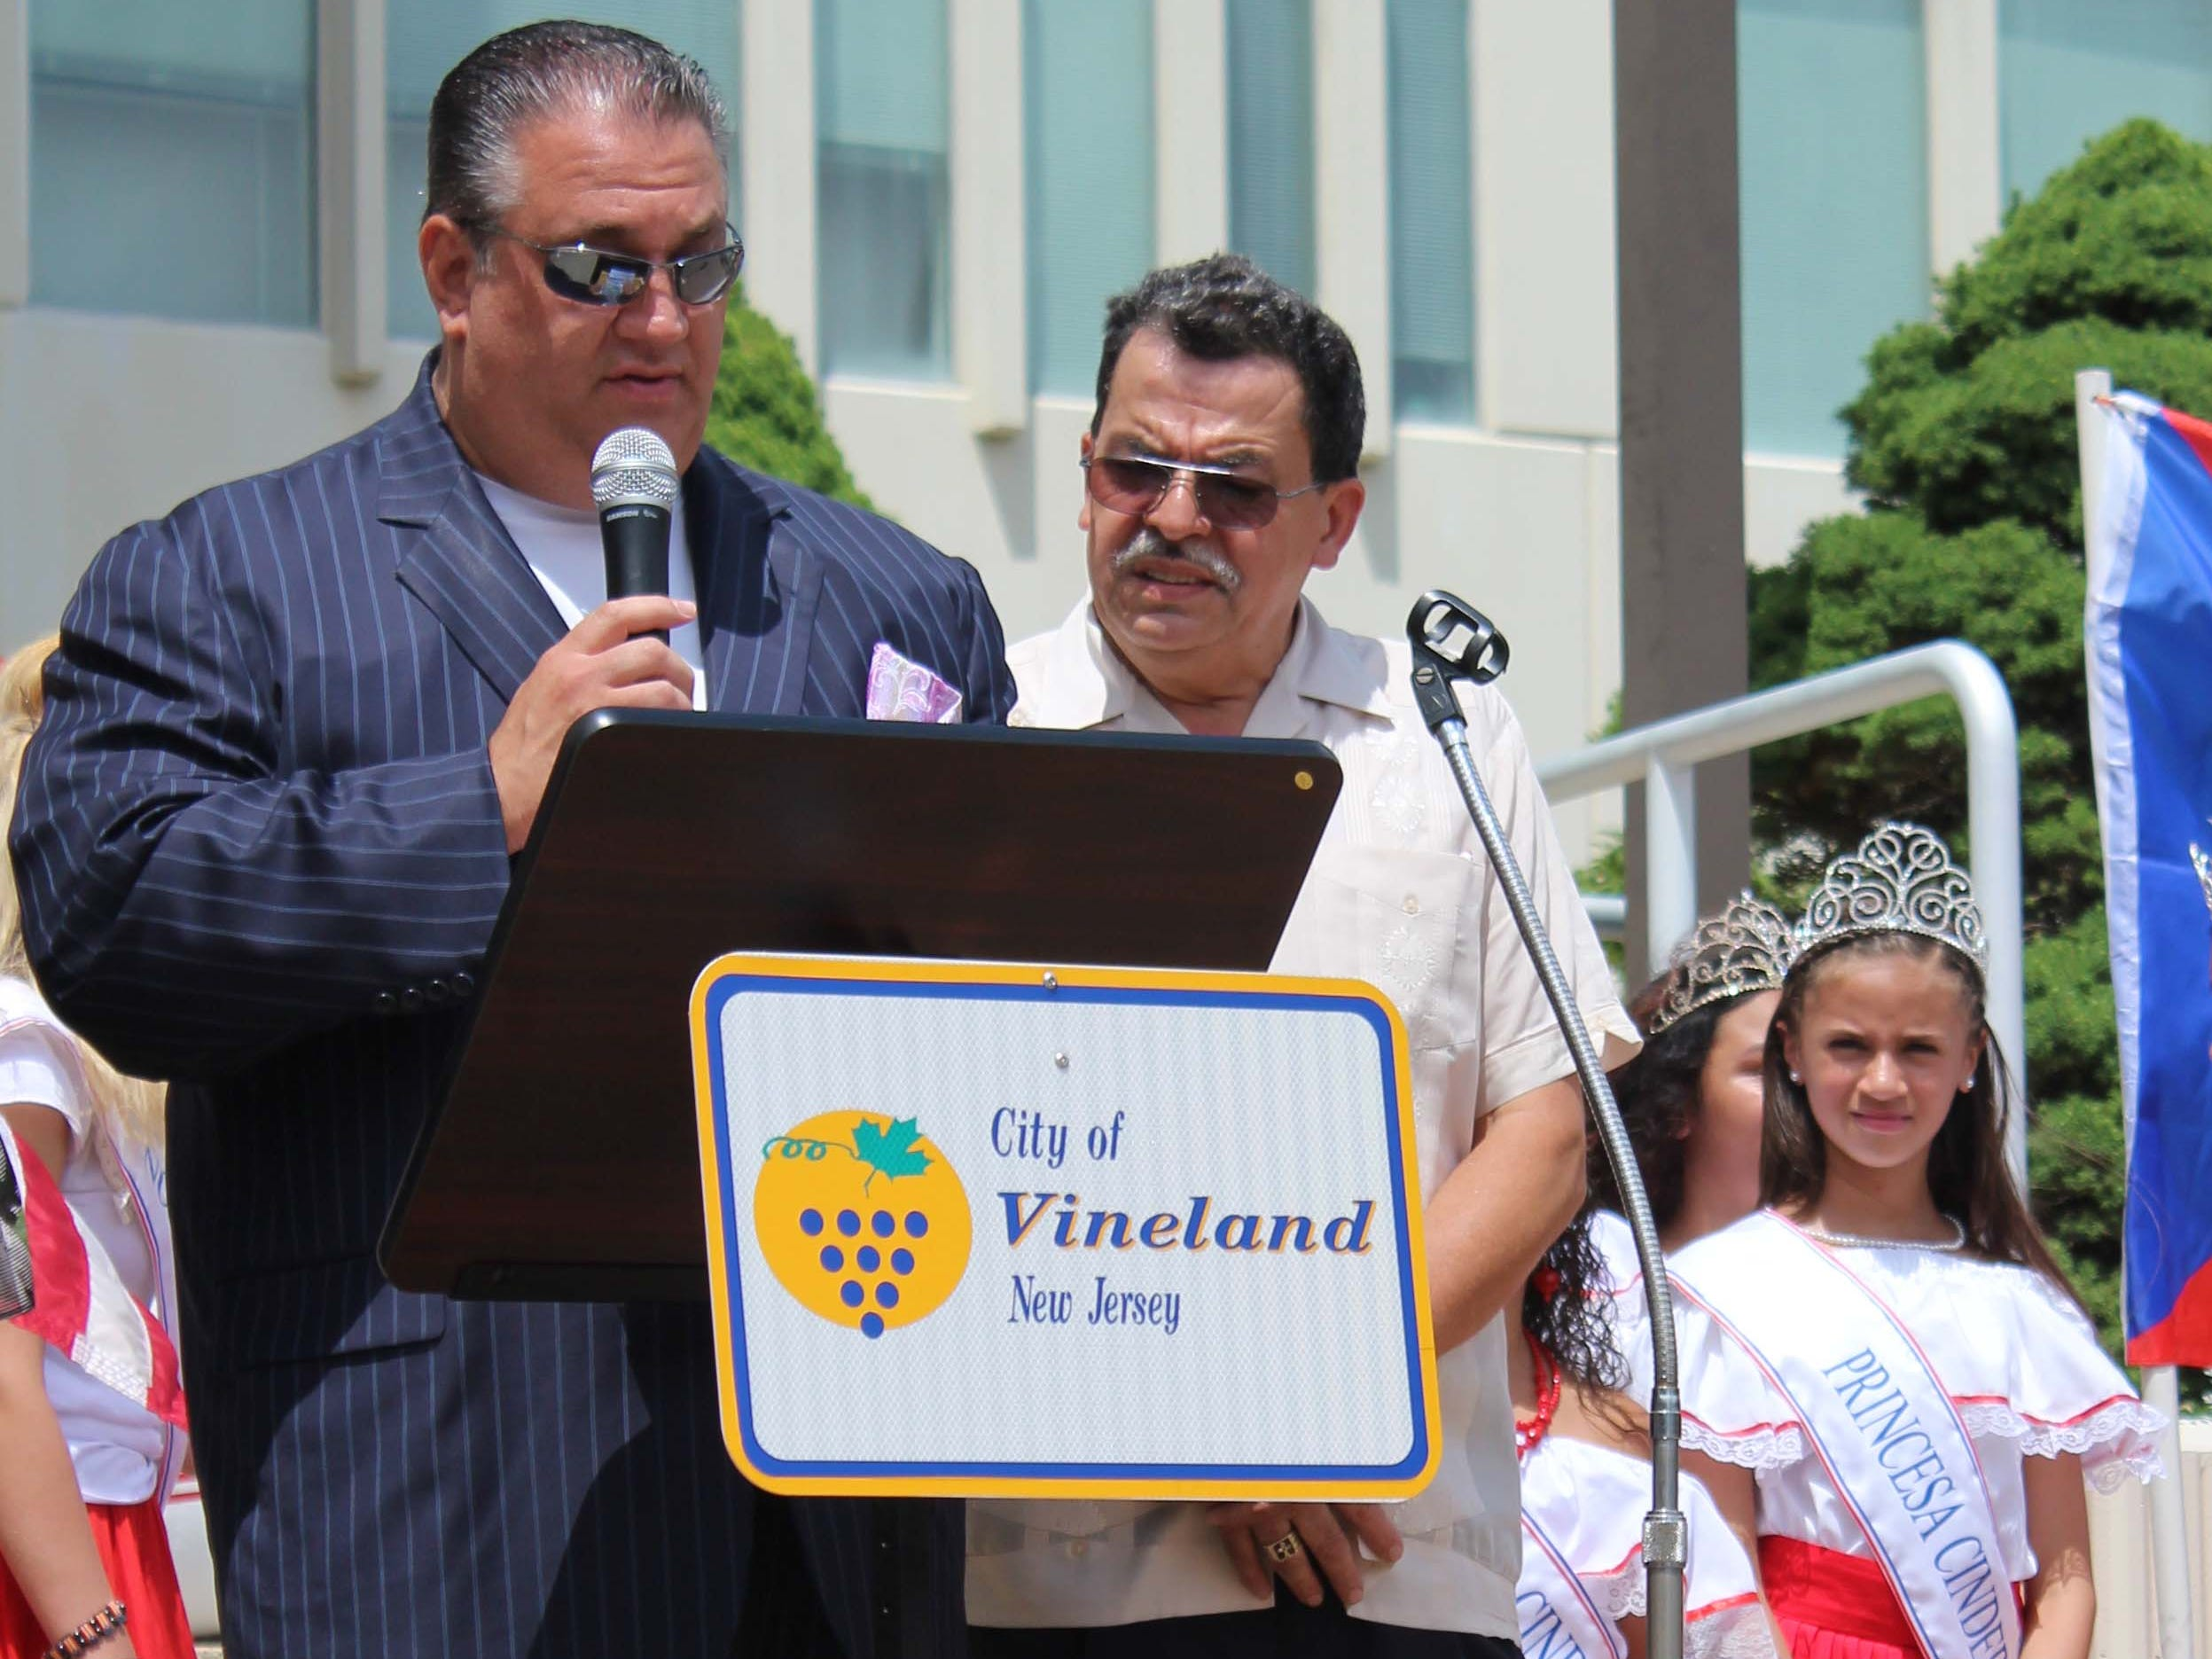 Vineland Mayor, Anthony Fanucci, gave a brief speech in Spanish to honor the start of the Puerto Rican Festival on Sunday, July 22, 2018.